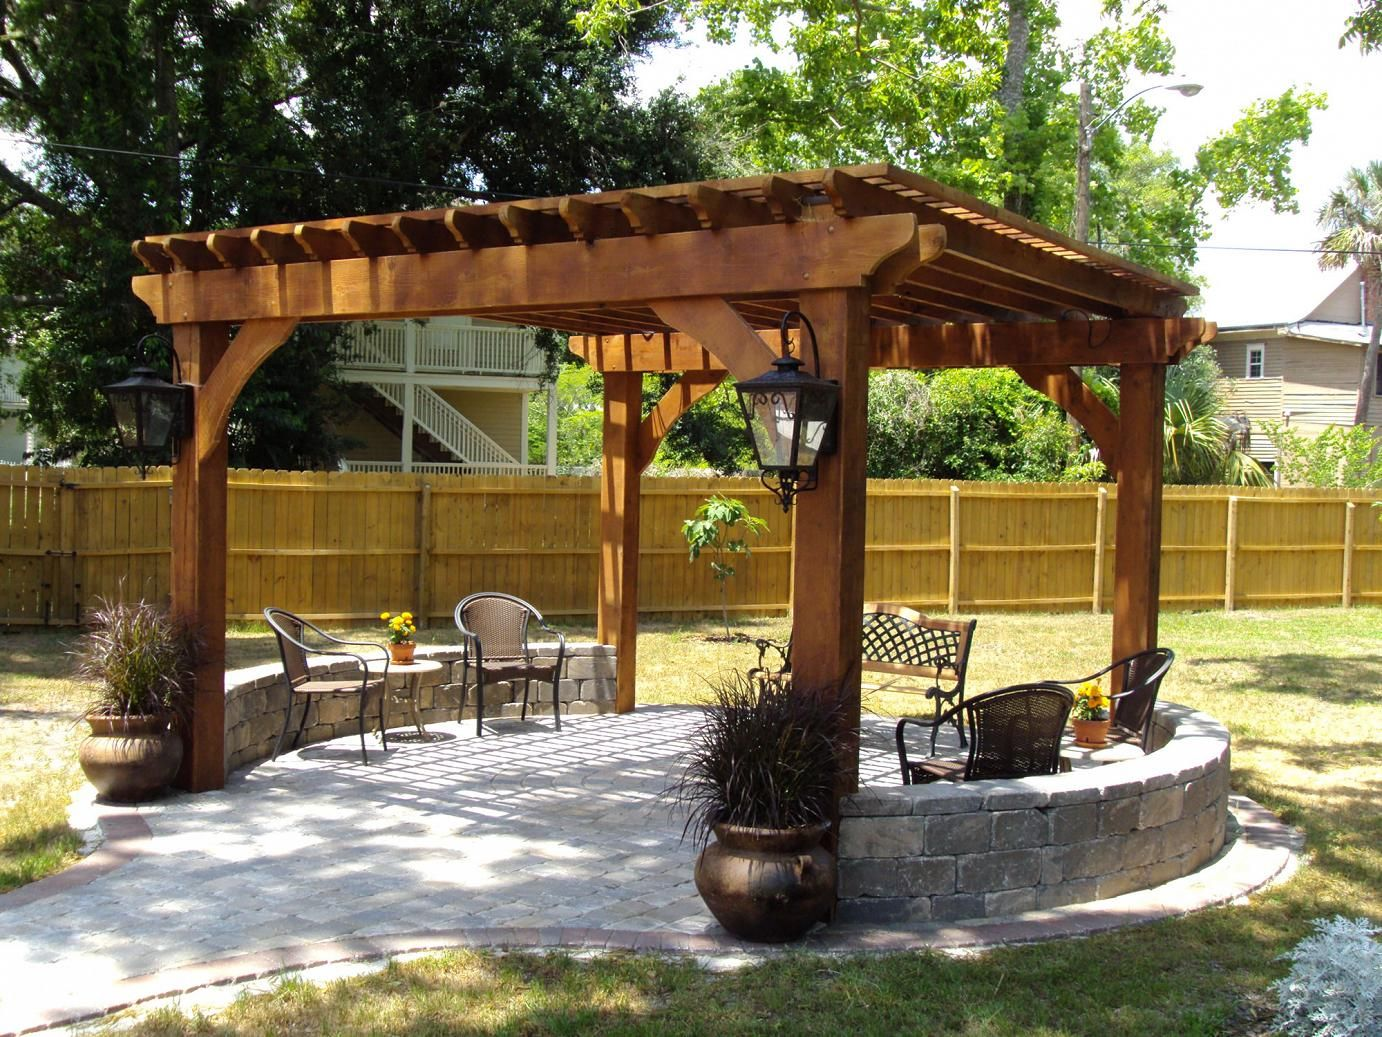 Outdoor Pergolas-Grand Prairie TX Landscape Designs & Outdoor Living Areas-We offer Landscape Design, Outdoor Patios & Pergolas, Outdoor Living Spaces, Stonescapes, Residential & Commercial Landscaping, Irrigation Installation & Repairs, Drainage Systems, Landscape Lighting, Outdoor Living Spaces, Tree Service, Lawn Service, and more.